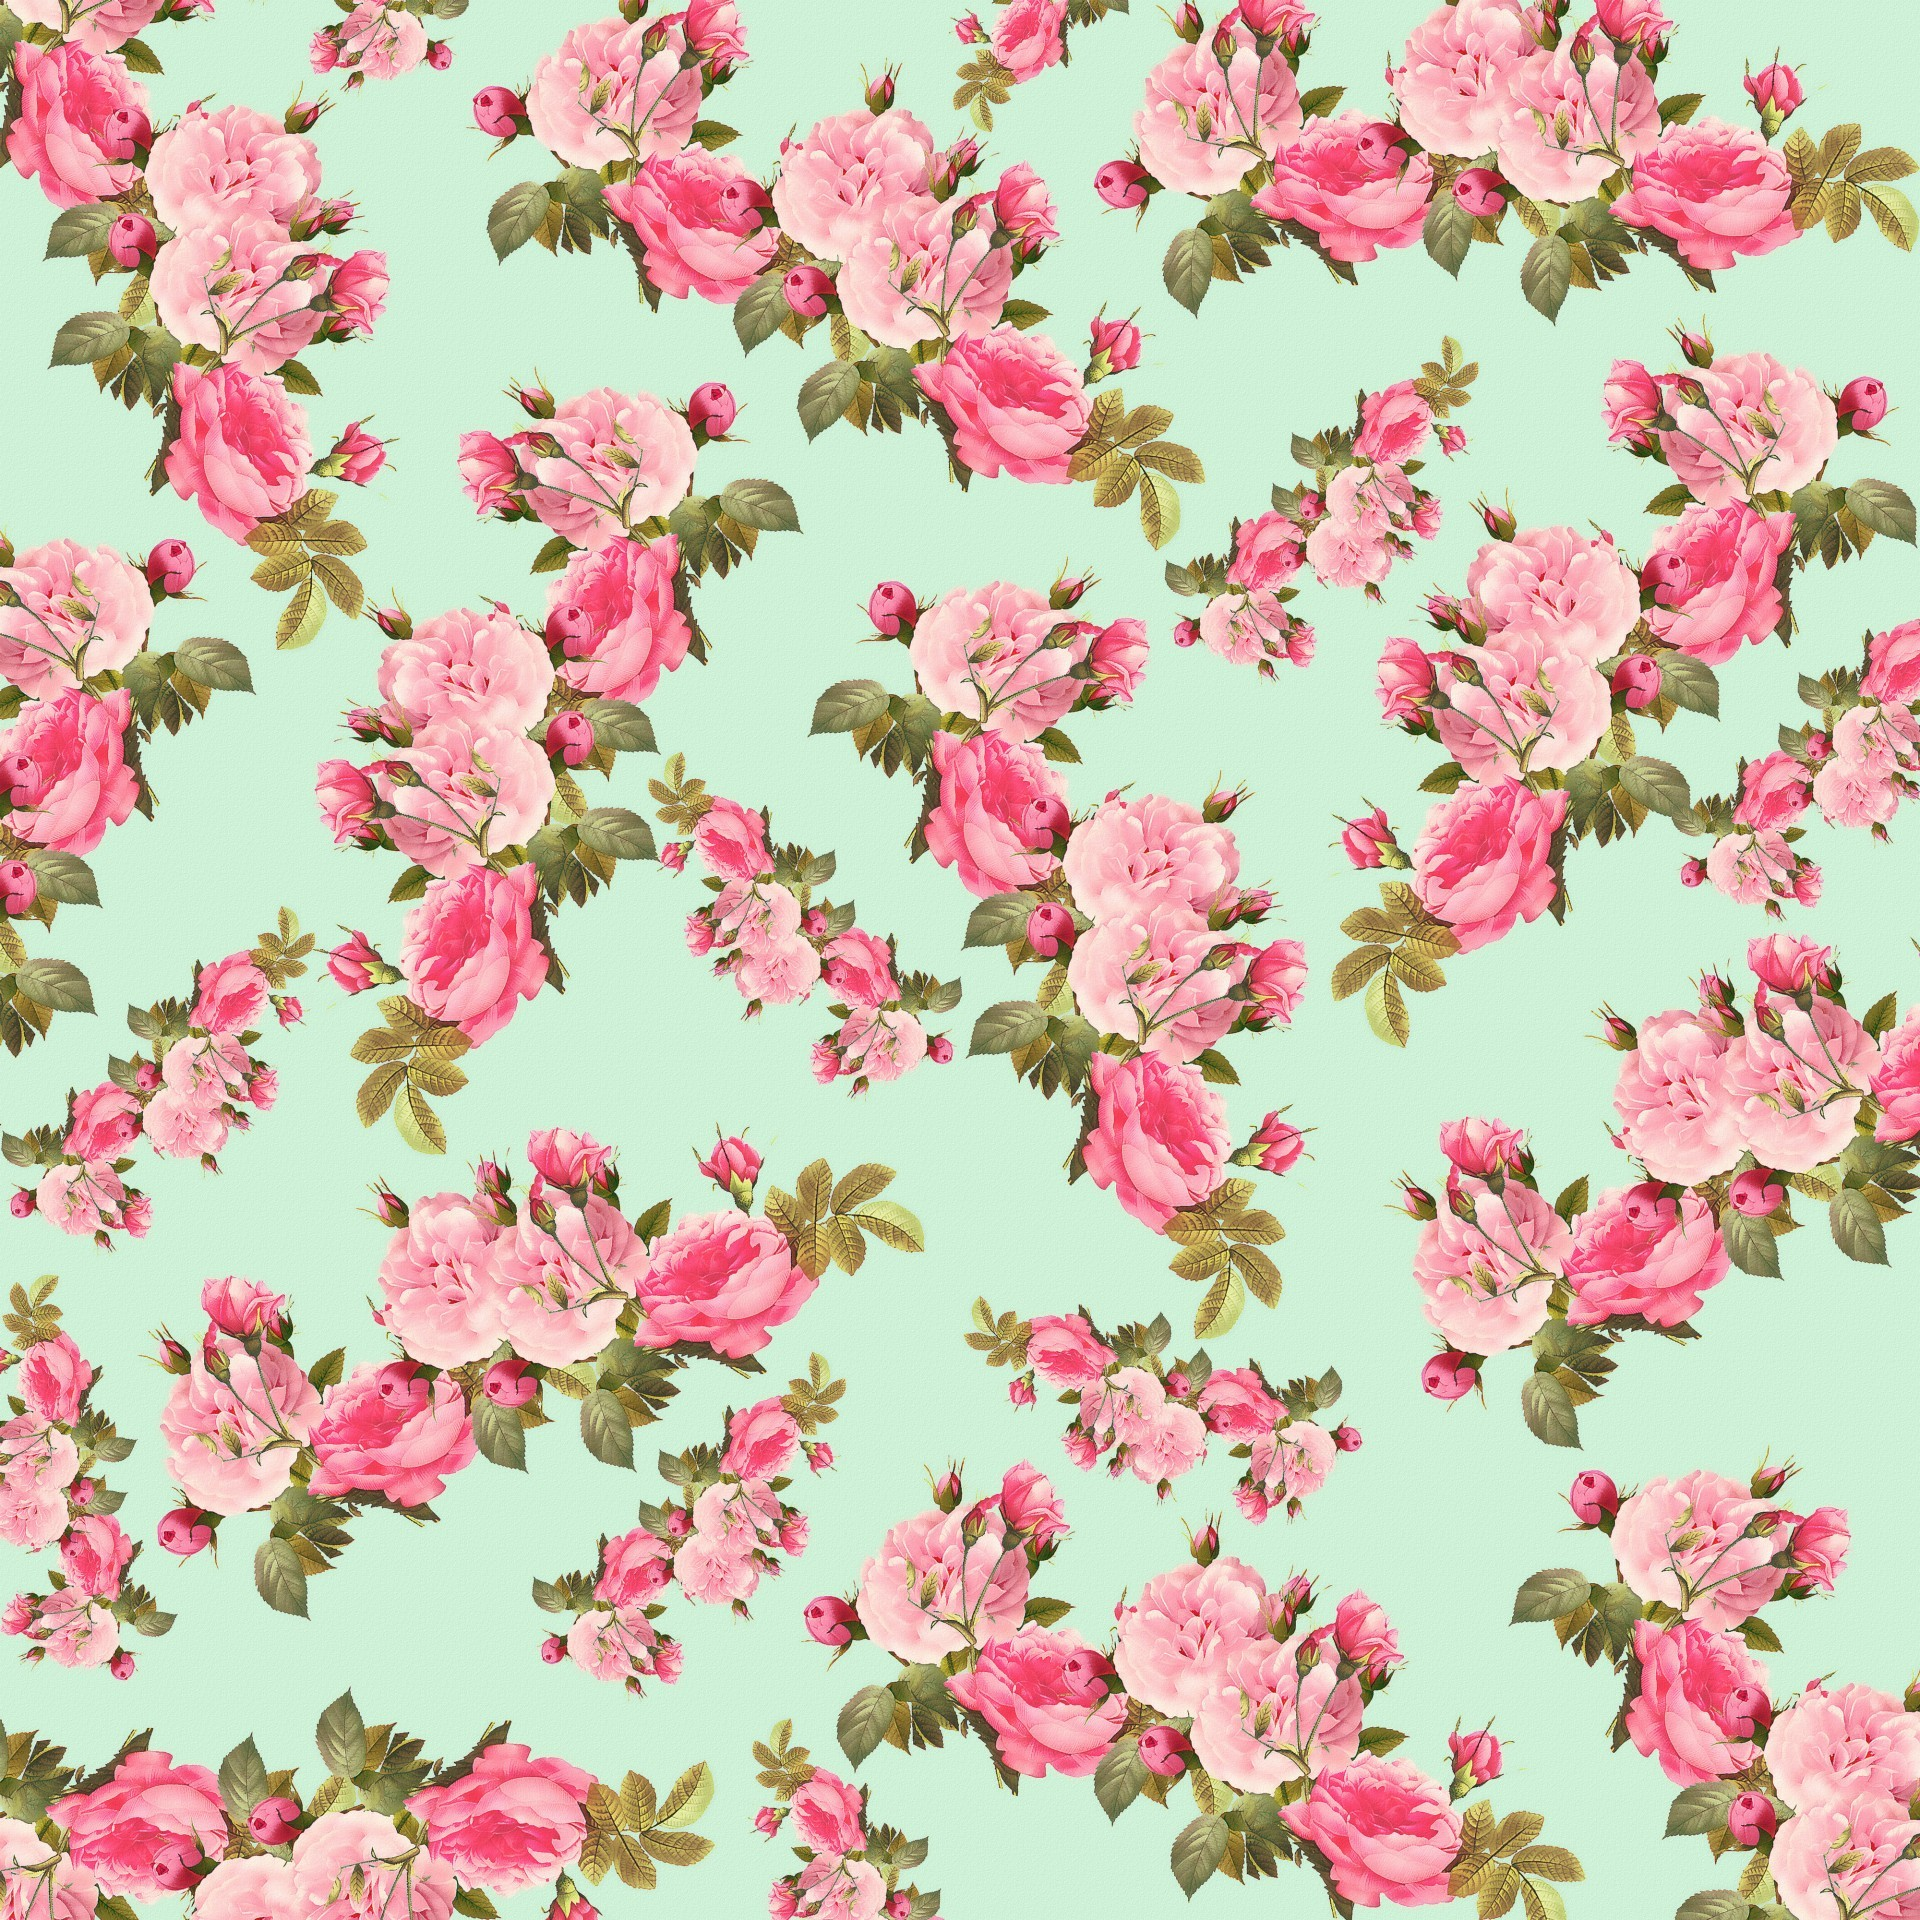 Floral Background ·① Download Free High Resolution